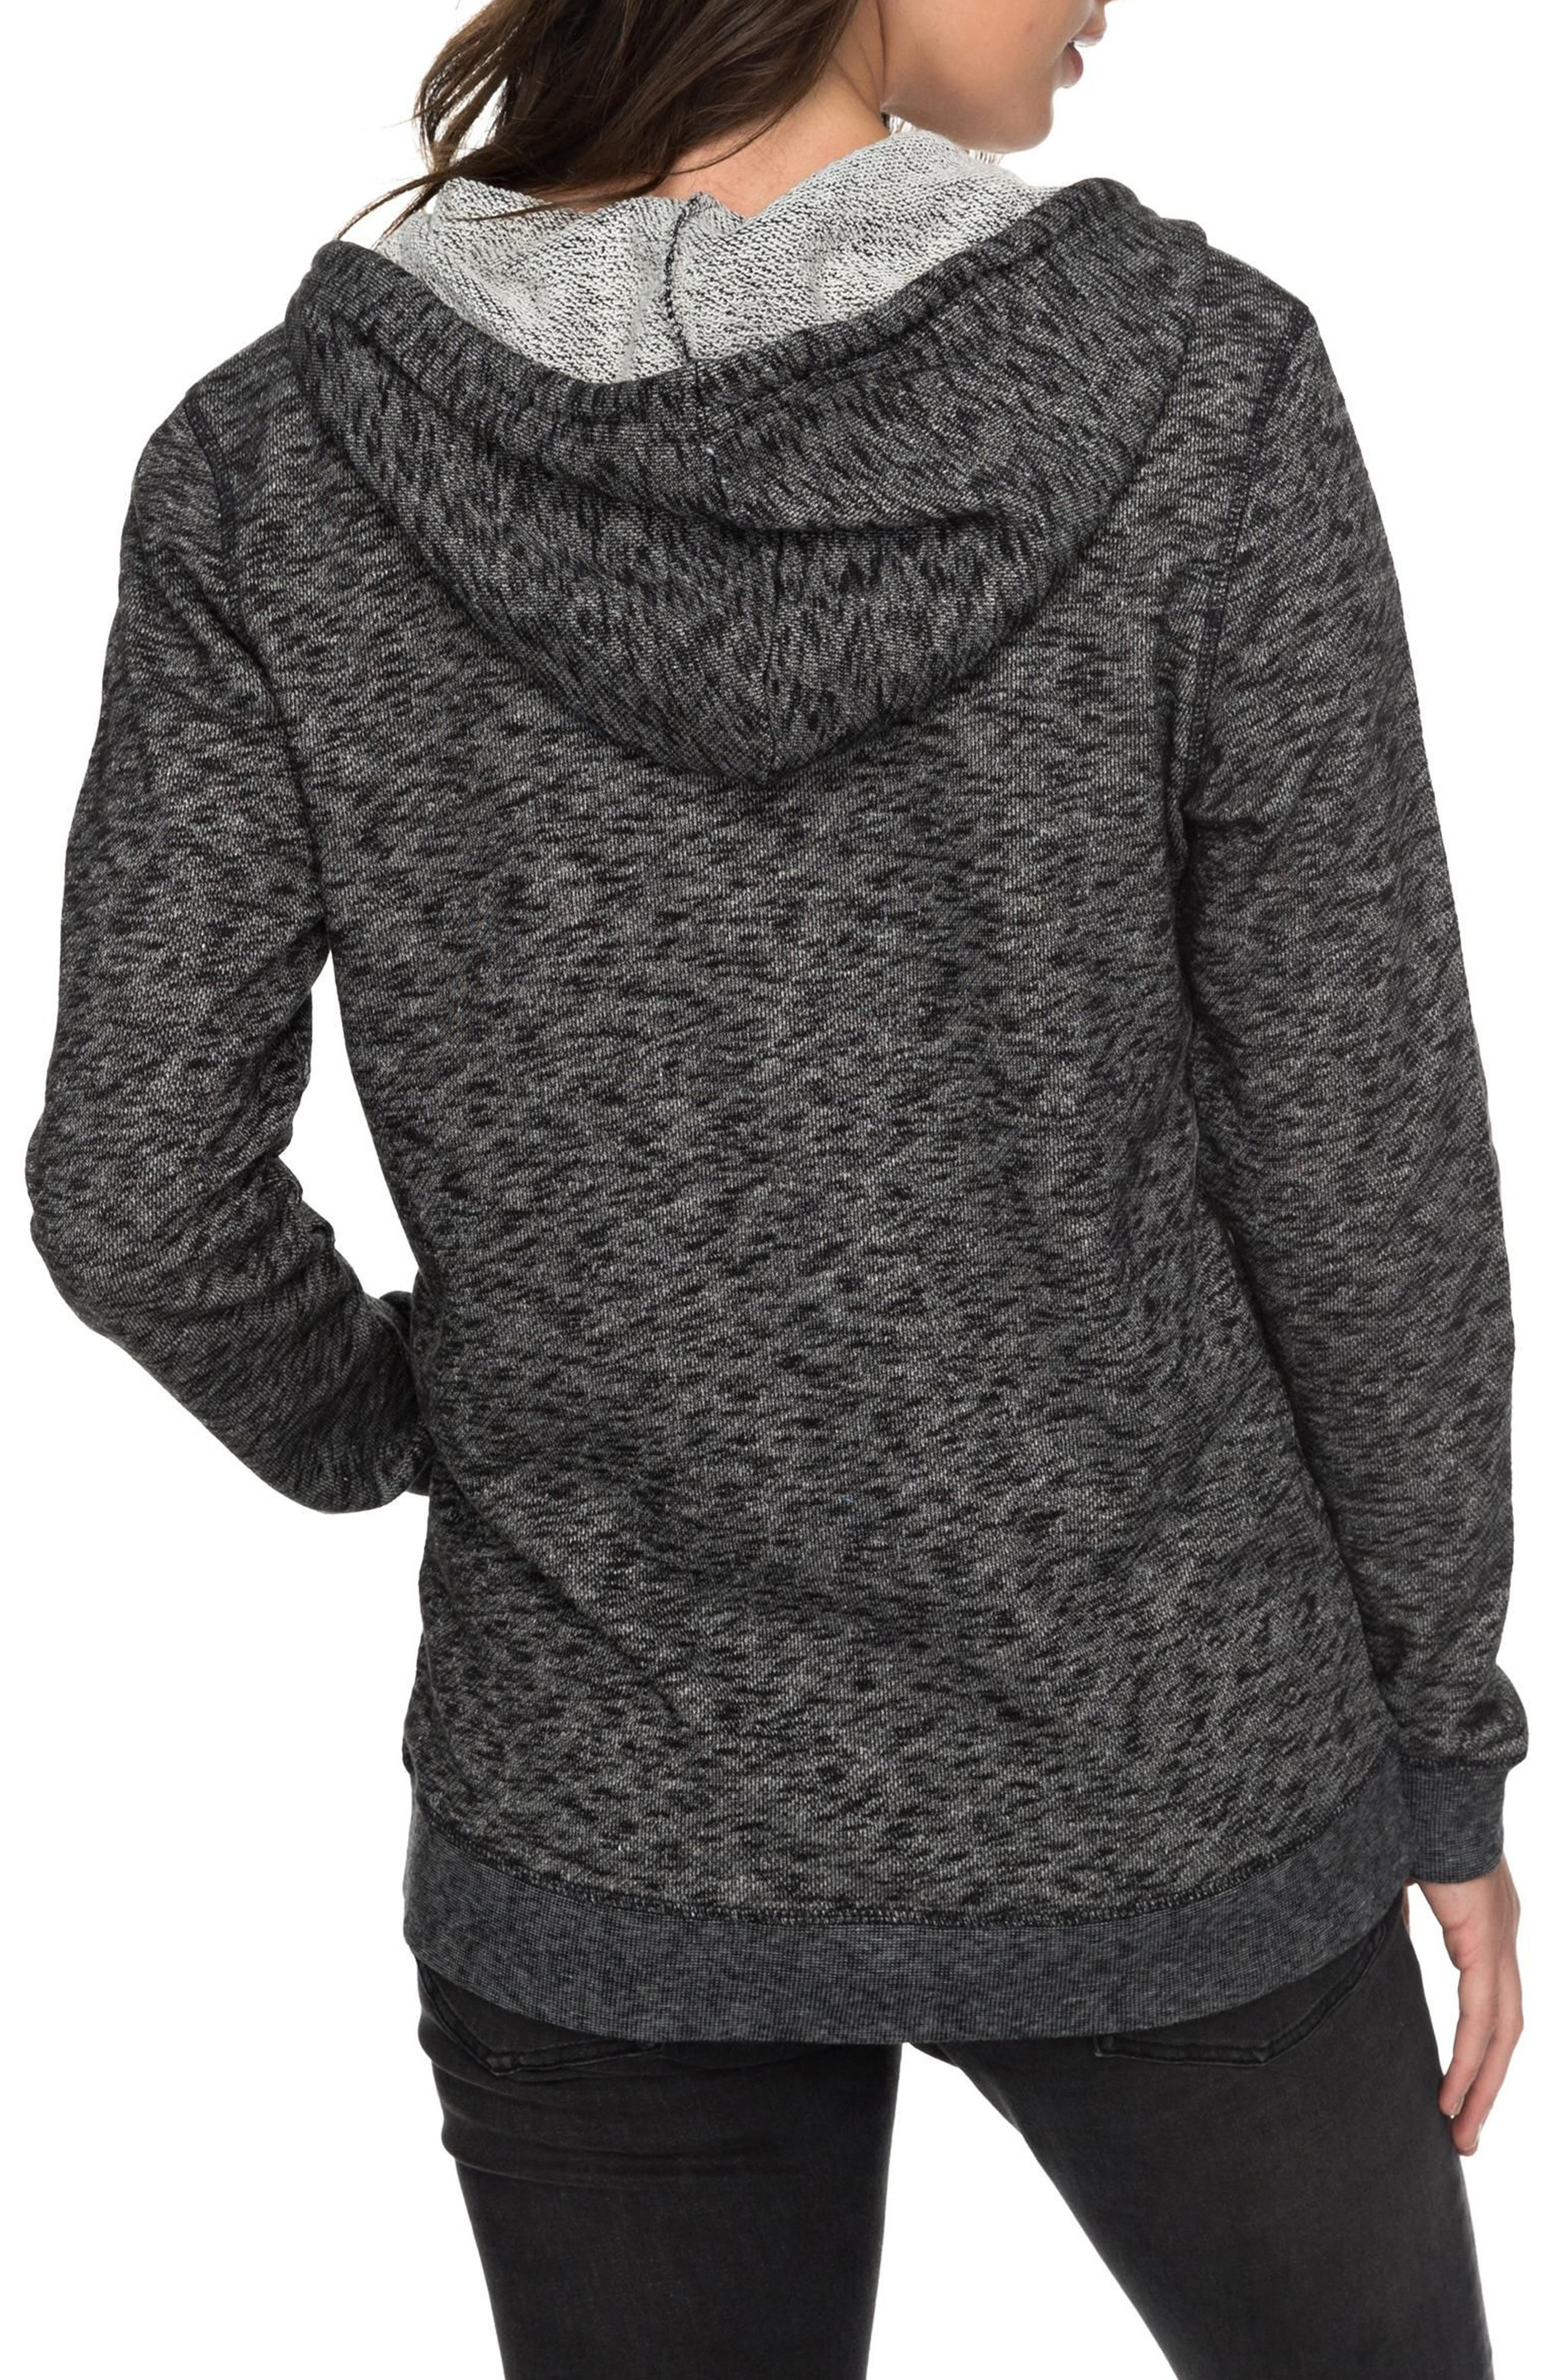 ROXY, Trippin Hoodie, Alternate thumbnail 2, color, ANTHRACITE HEATHER